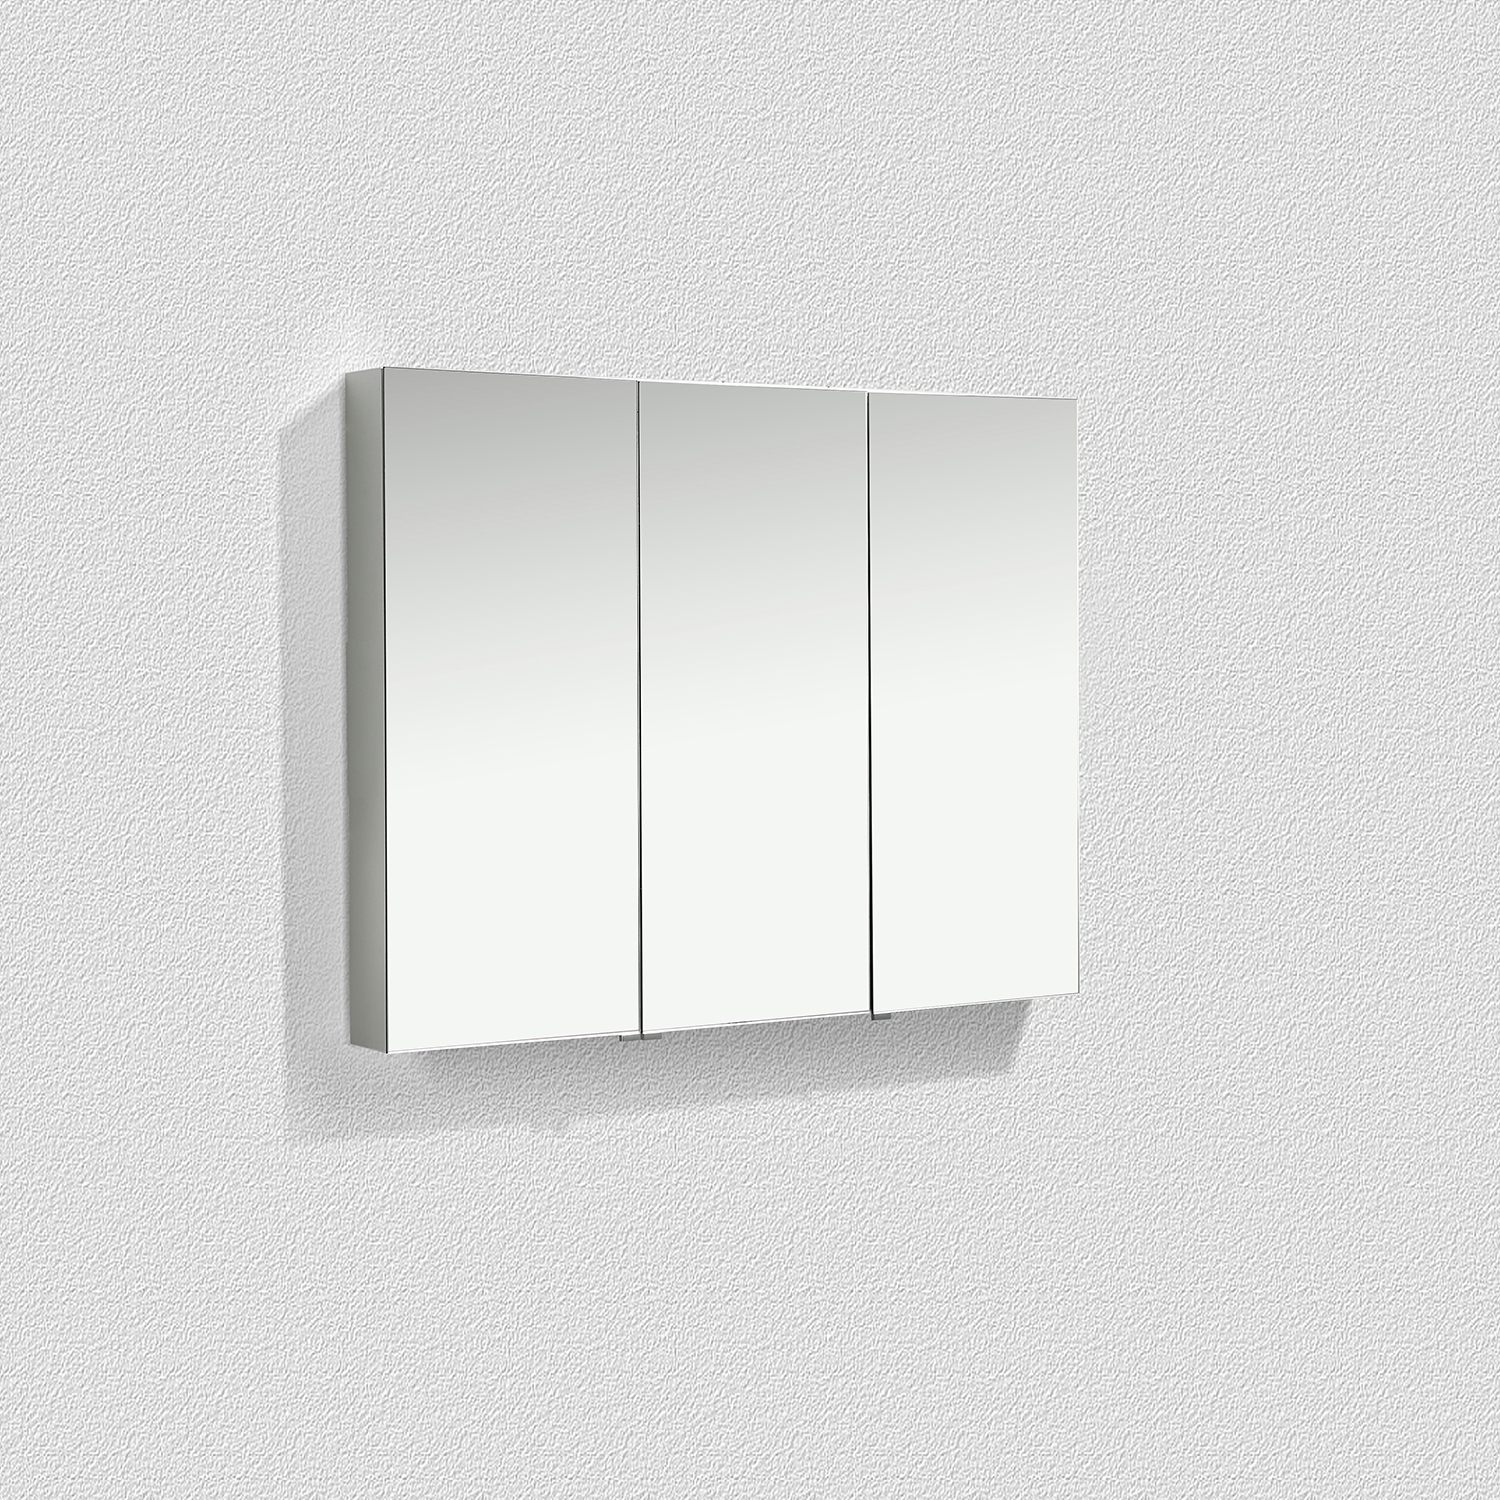 Eviva Mirror Medicine Cabinet 48 Inches With Led Lights Decors Us